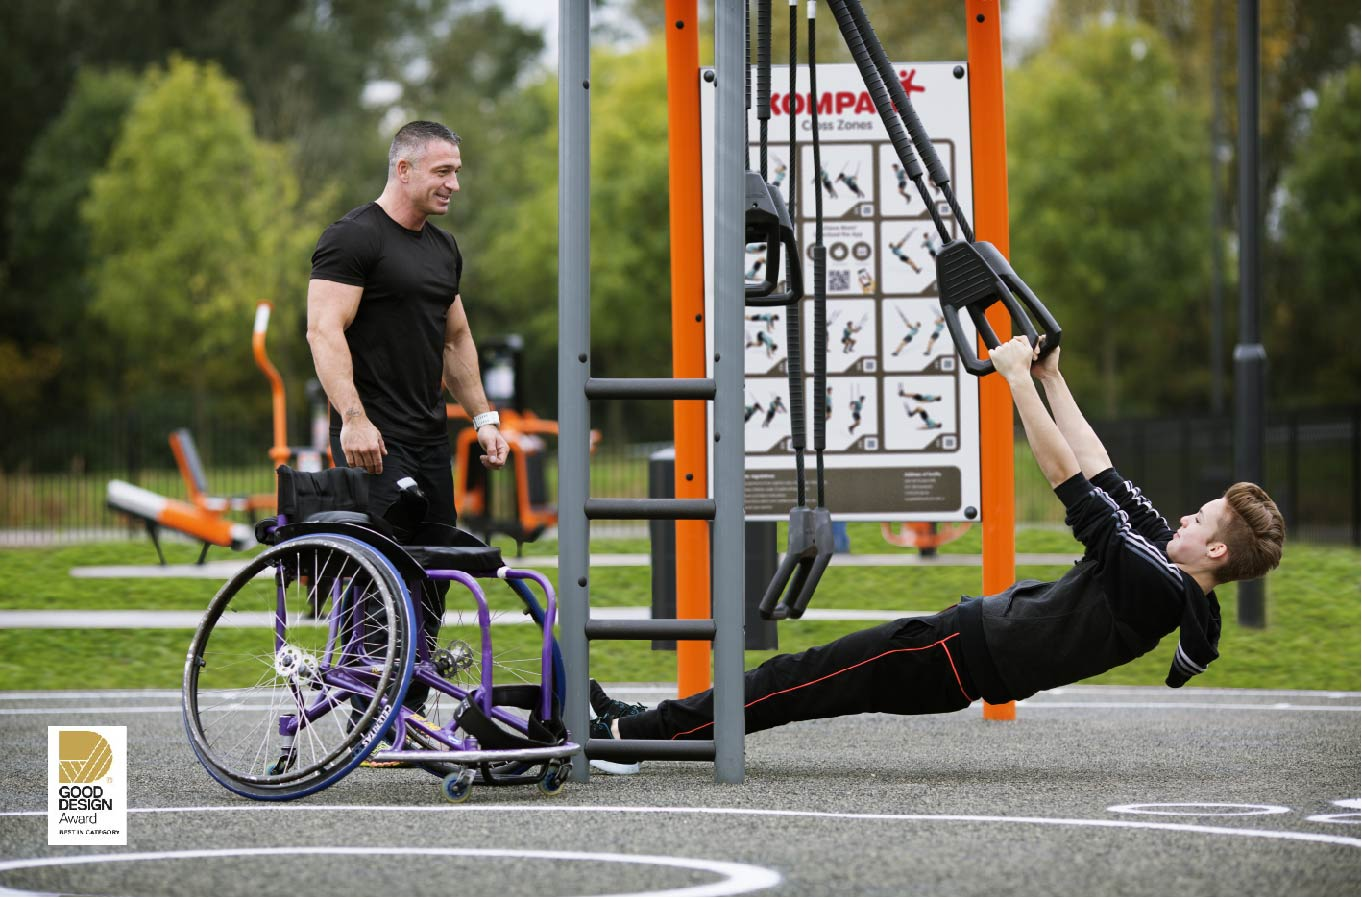 New Outdoor Fitness Range Wins Prestigious Award